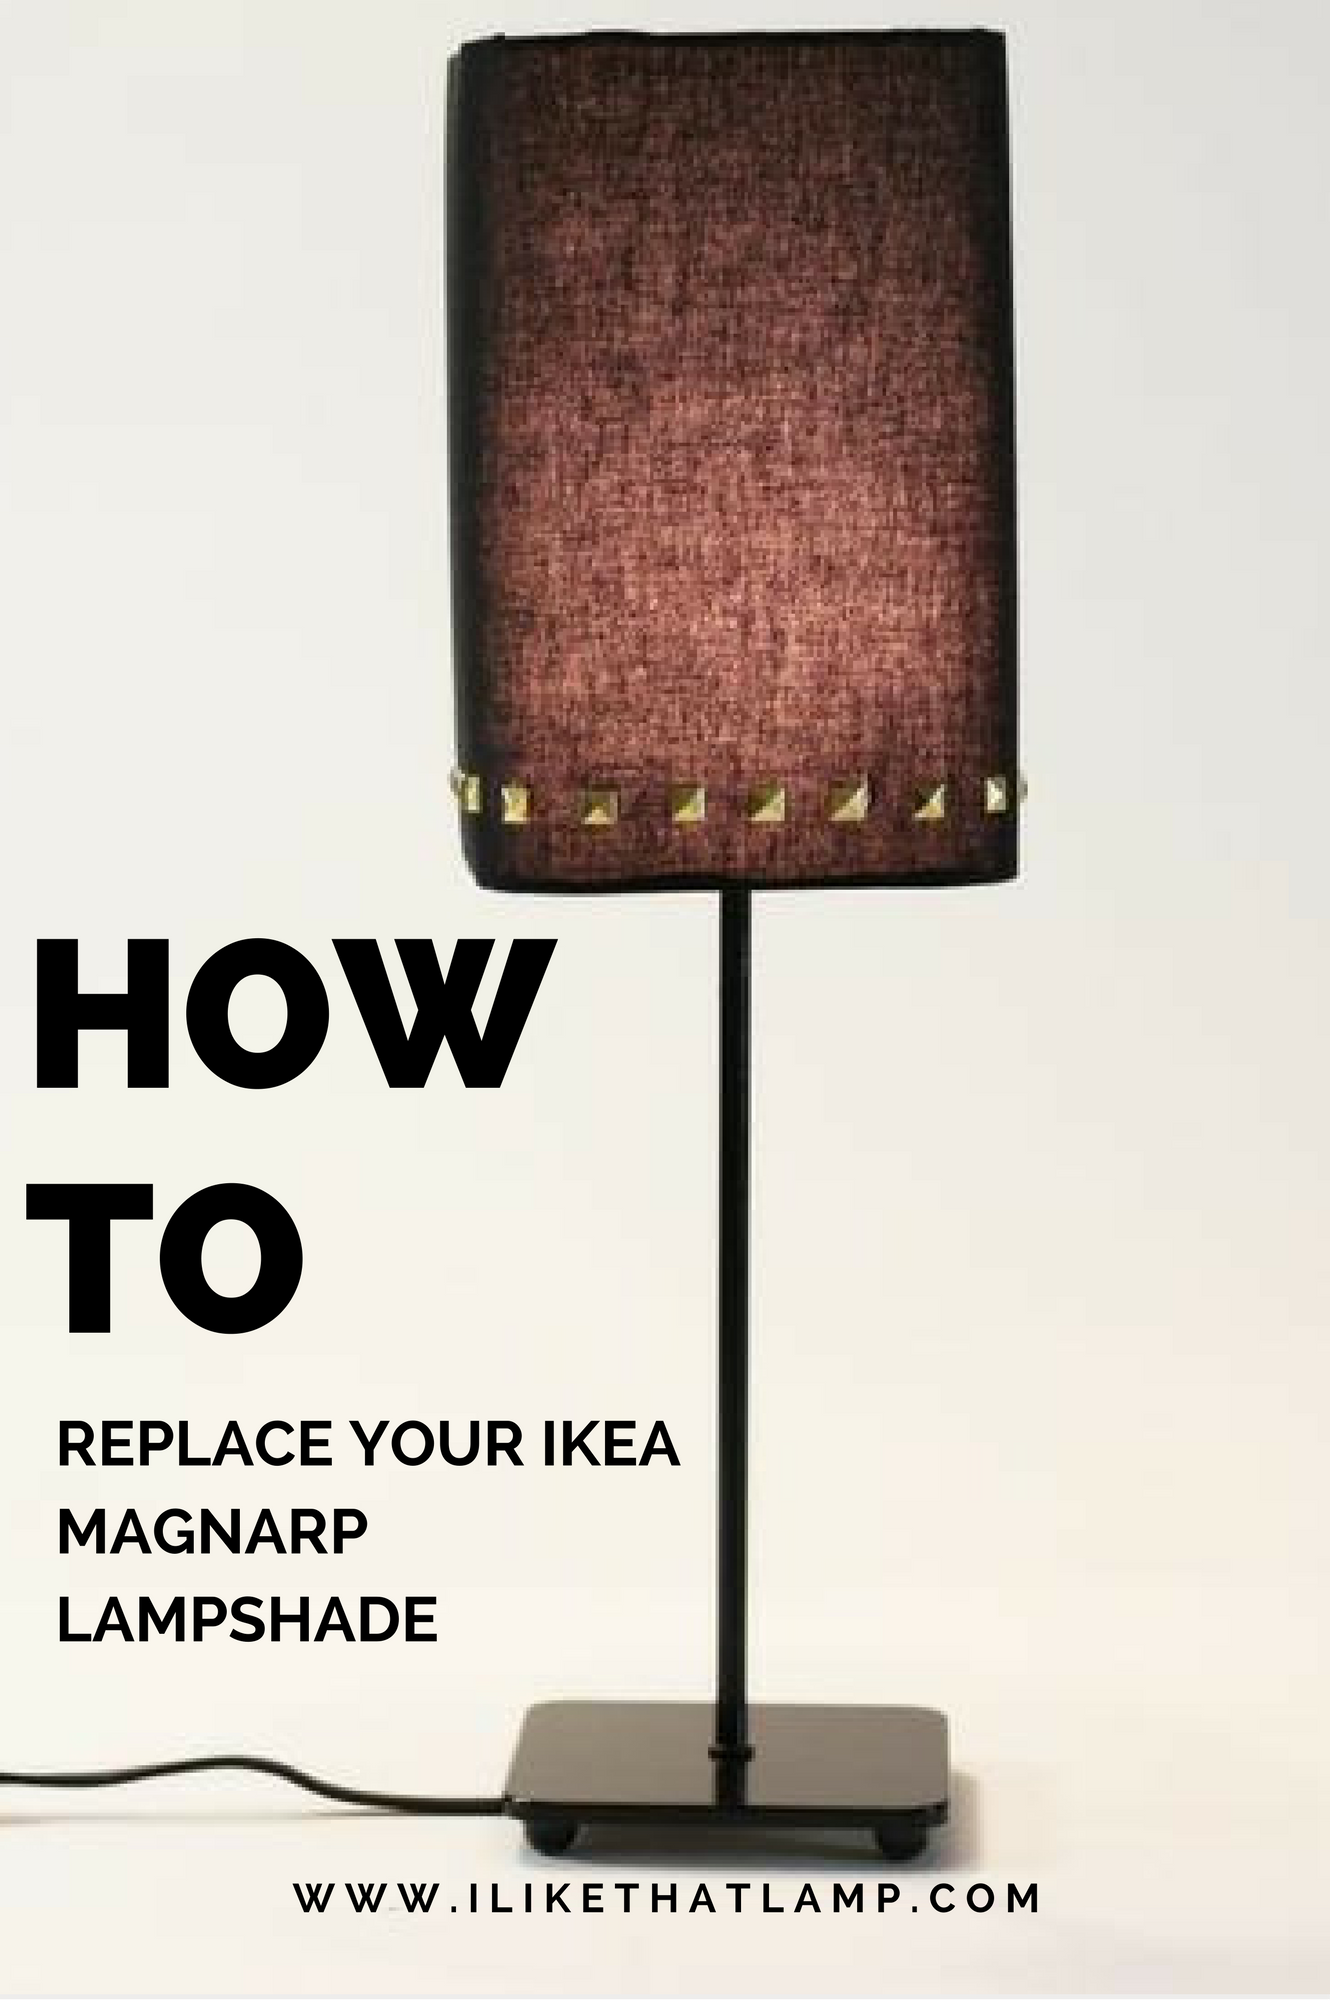 How to Replace Your Ikea Magnarp Lampshade | Lamp shades